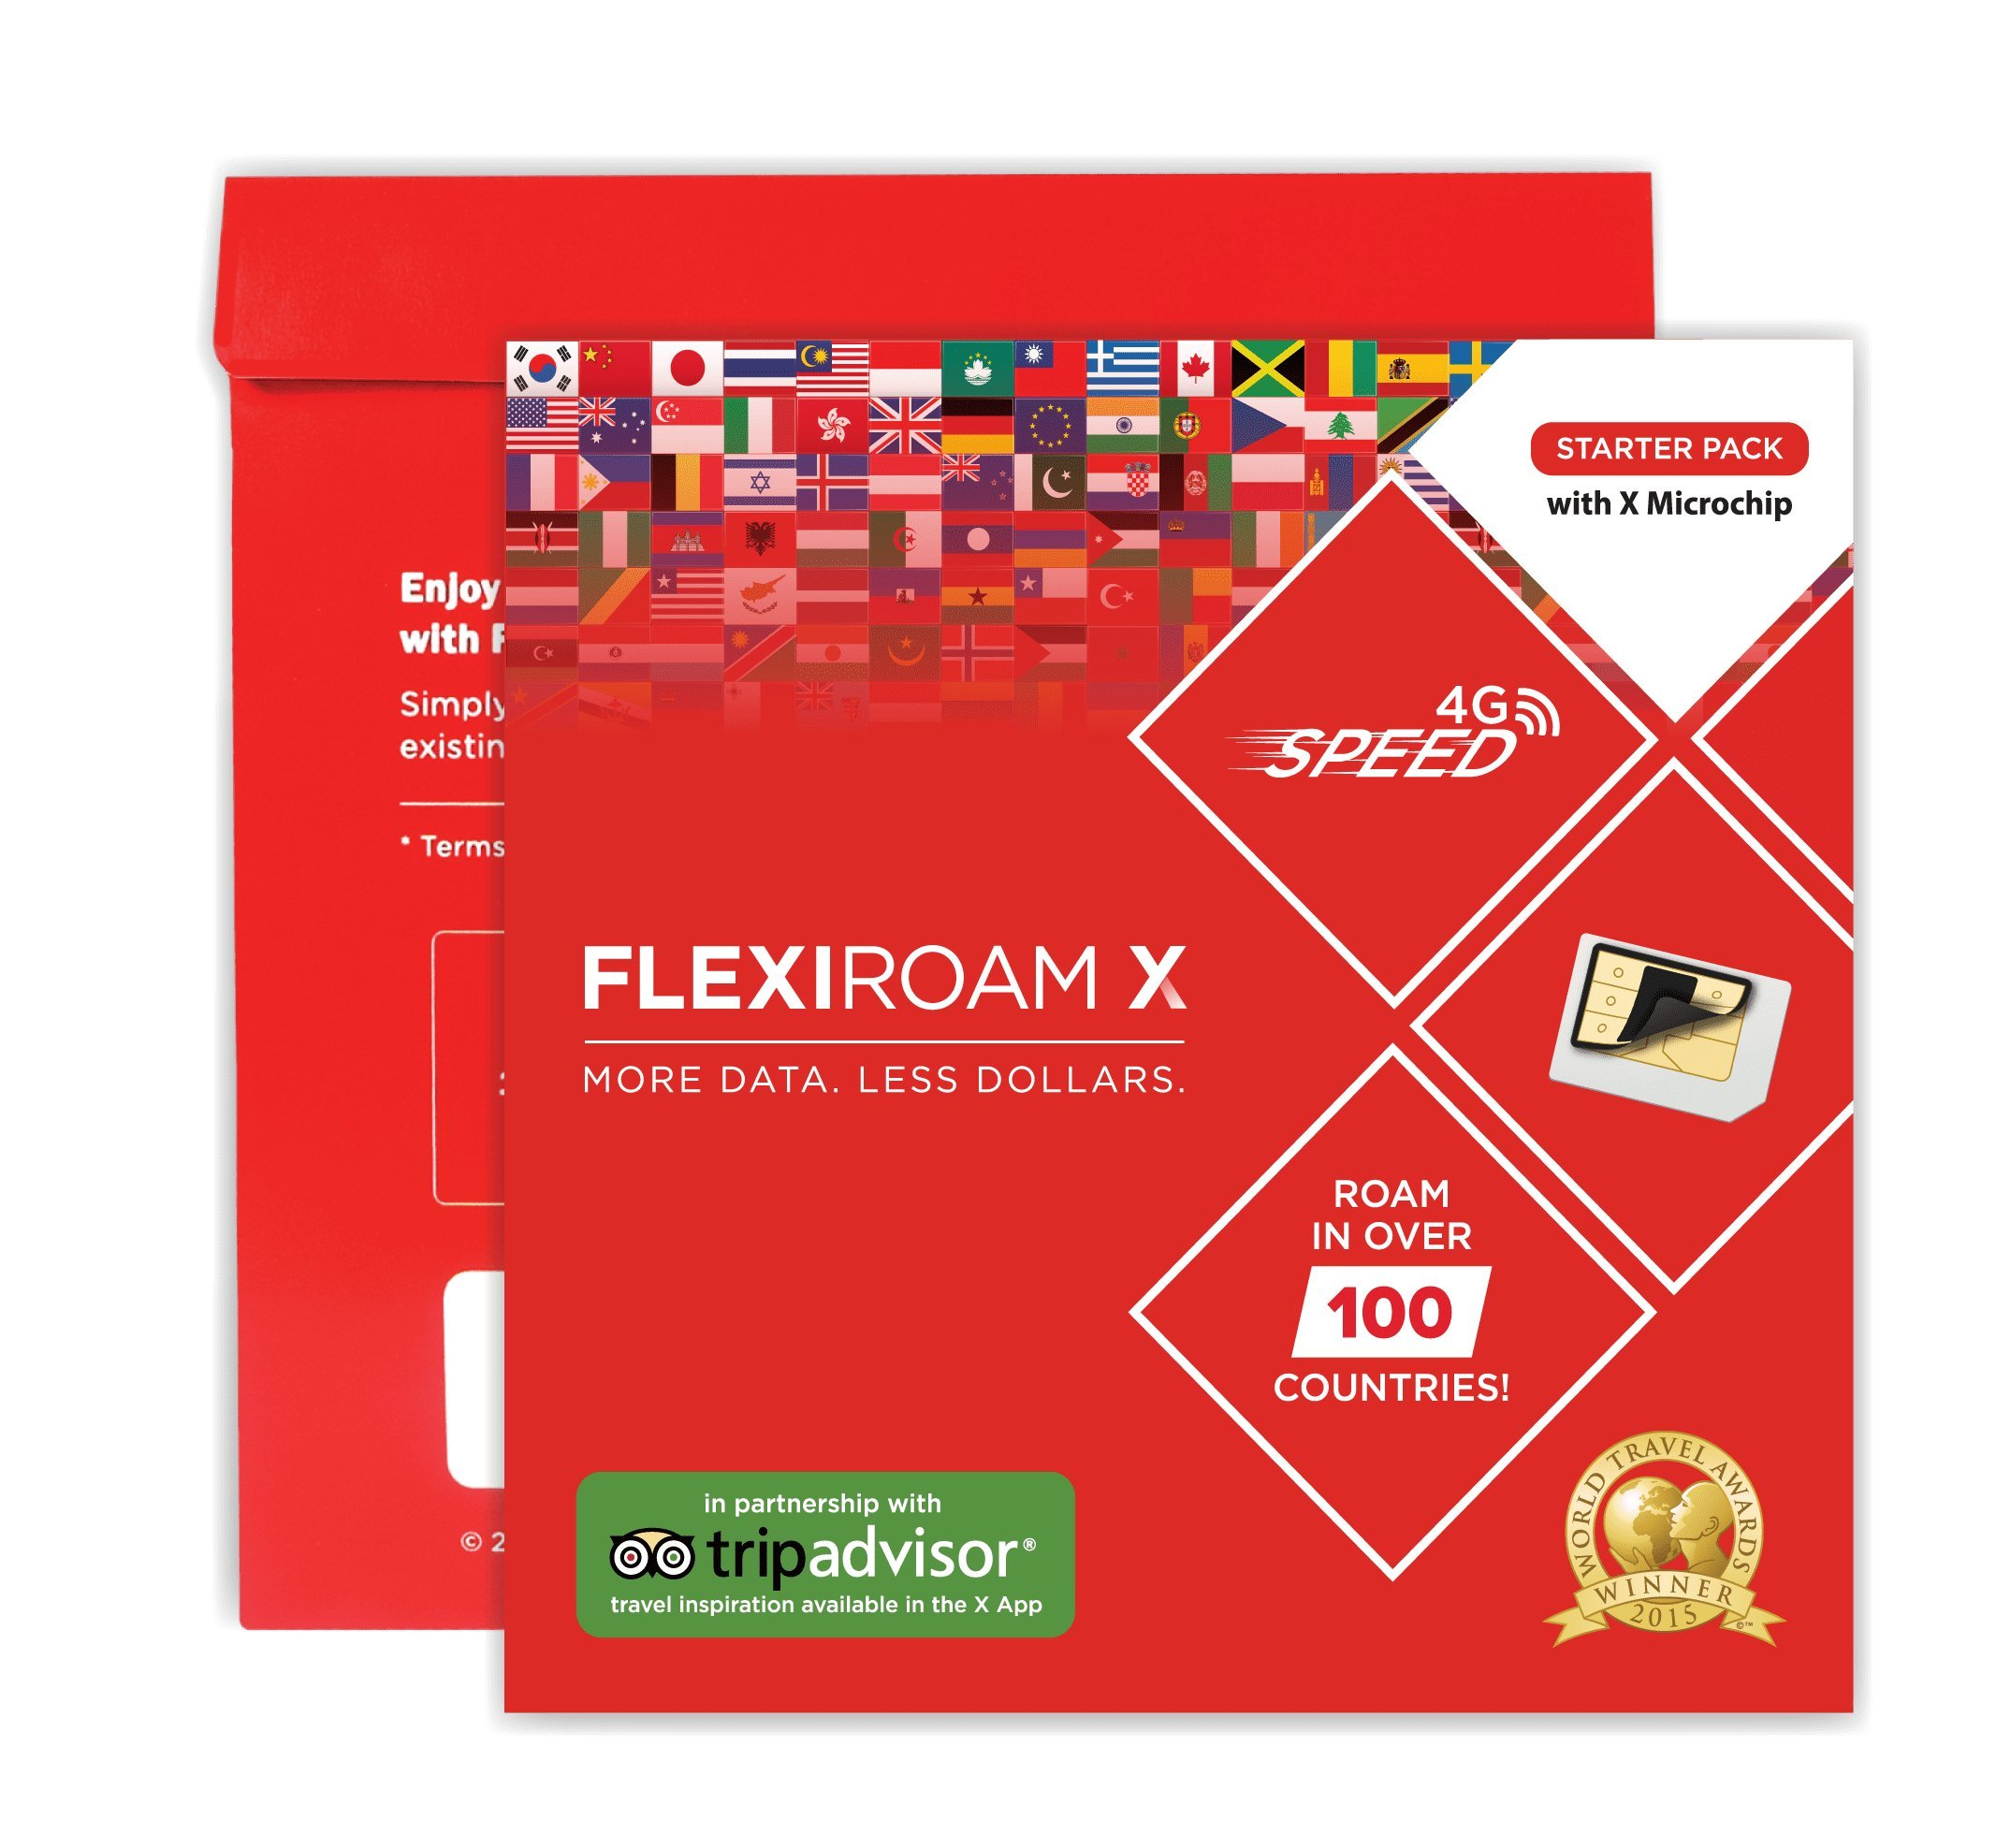 Worldwide Data Micro Chip - keep your sim card - 1GB Data for 30 Days - Internet in 4G in more than 100 countries by Flexiroam